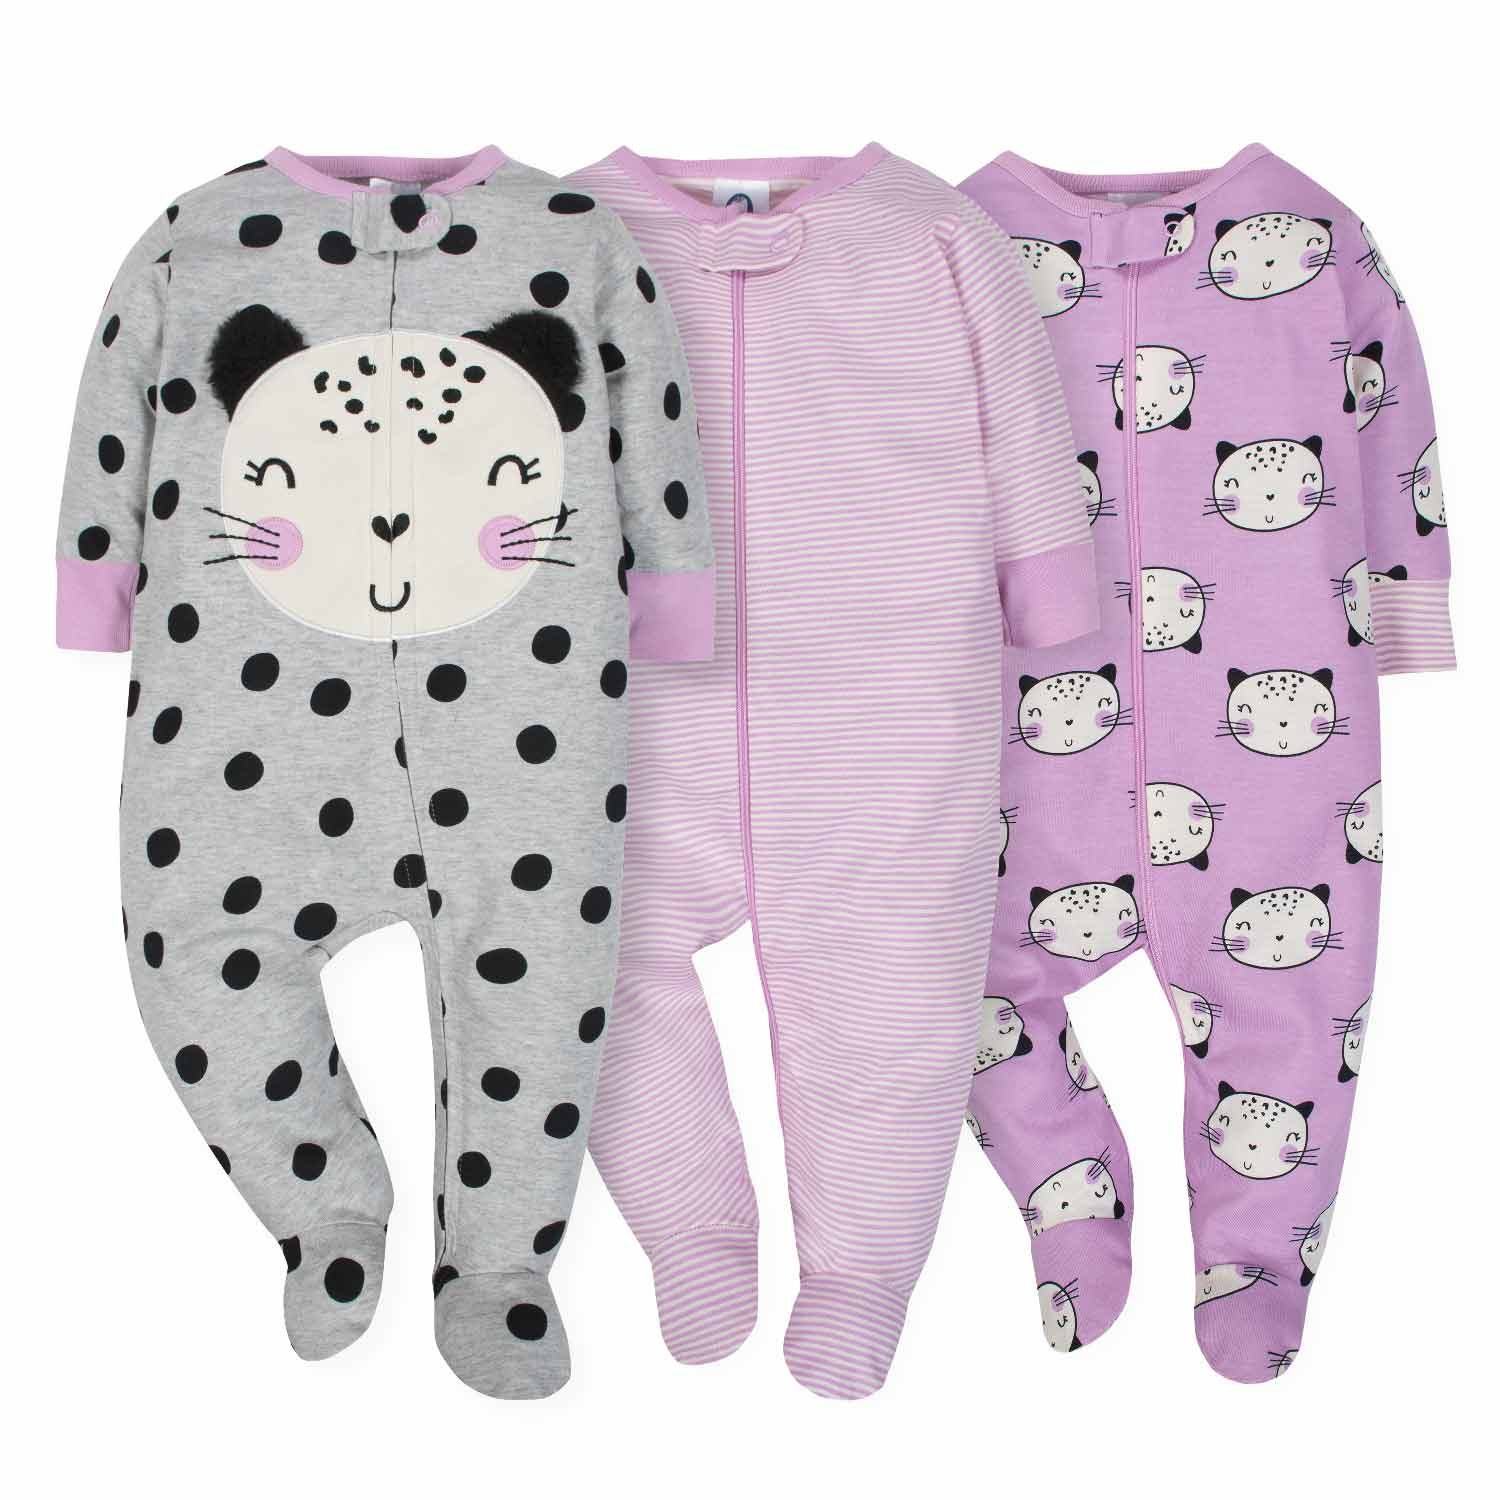 3-Pack Girls Cat Sleep N' Play